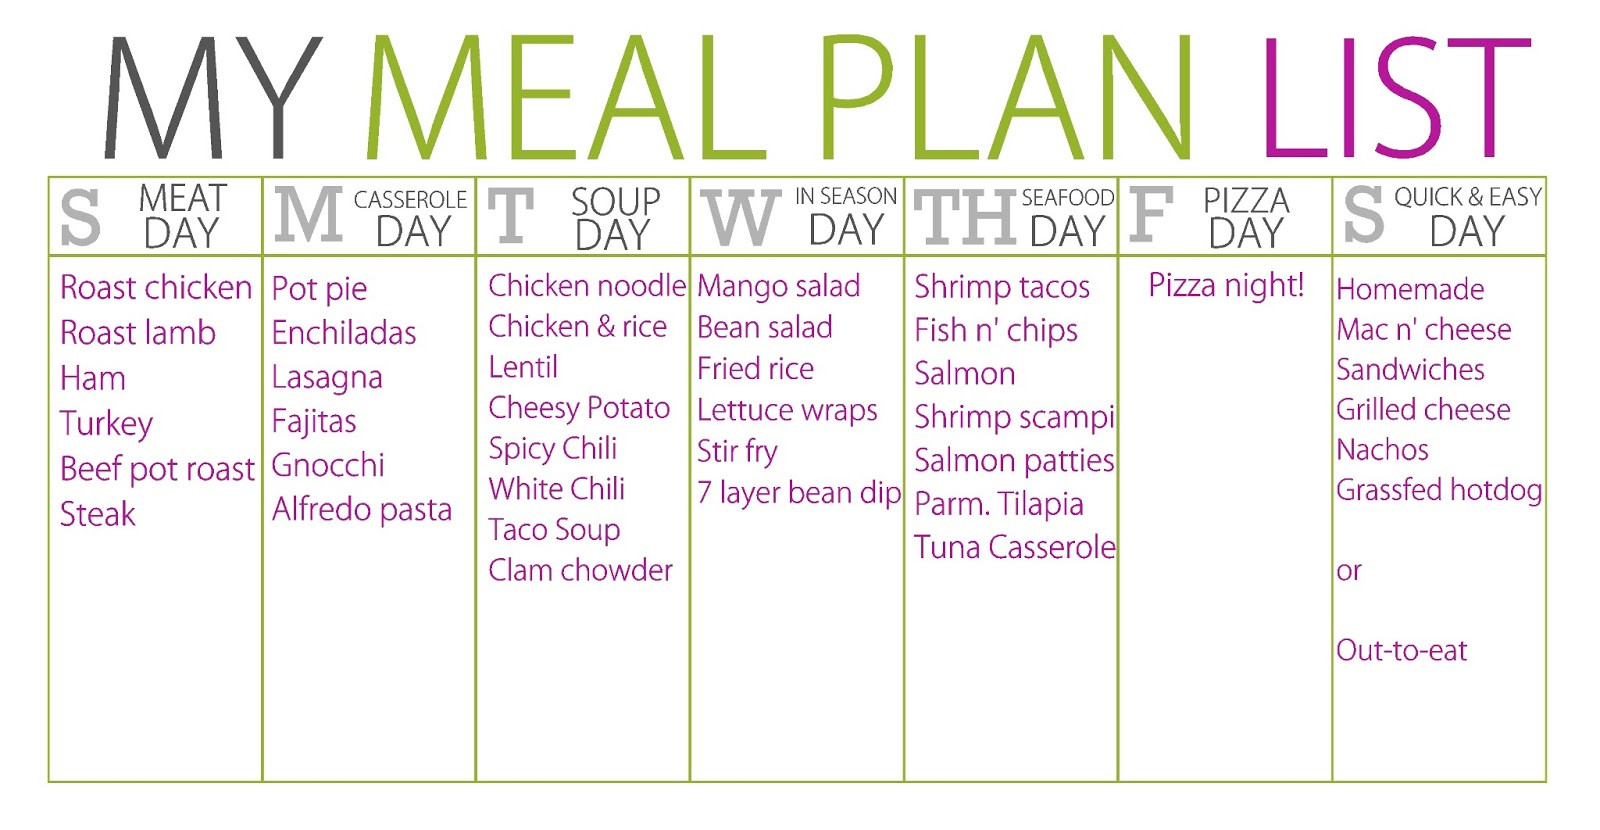 Healthy Breakfast Lunch And Dinner Chart  Balanced Diet Plan A Balanced Diet For Breakfast Lunch Dinner